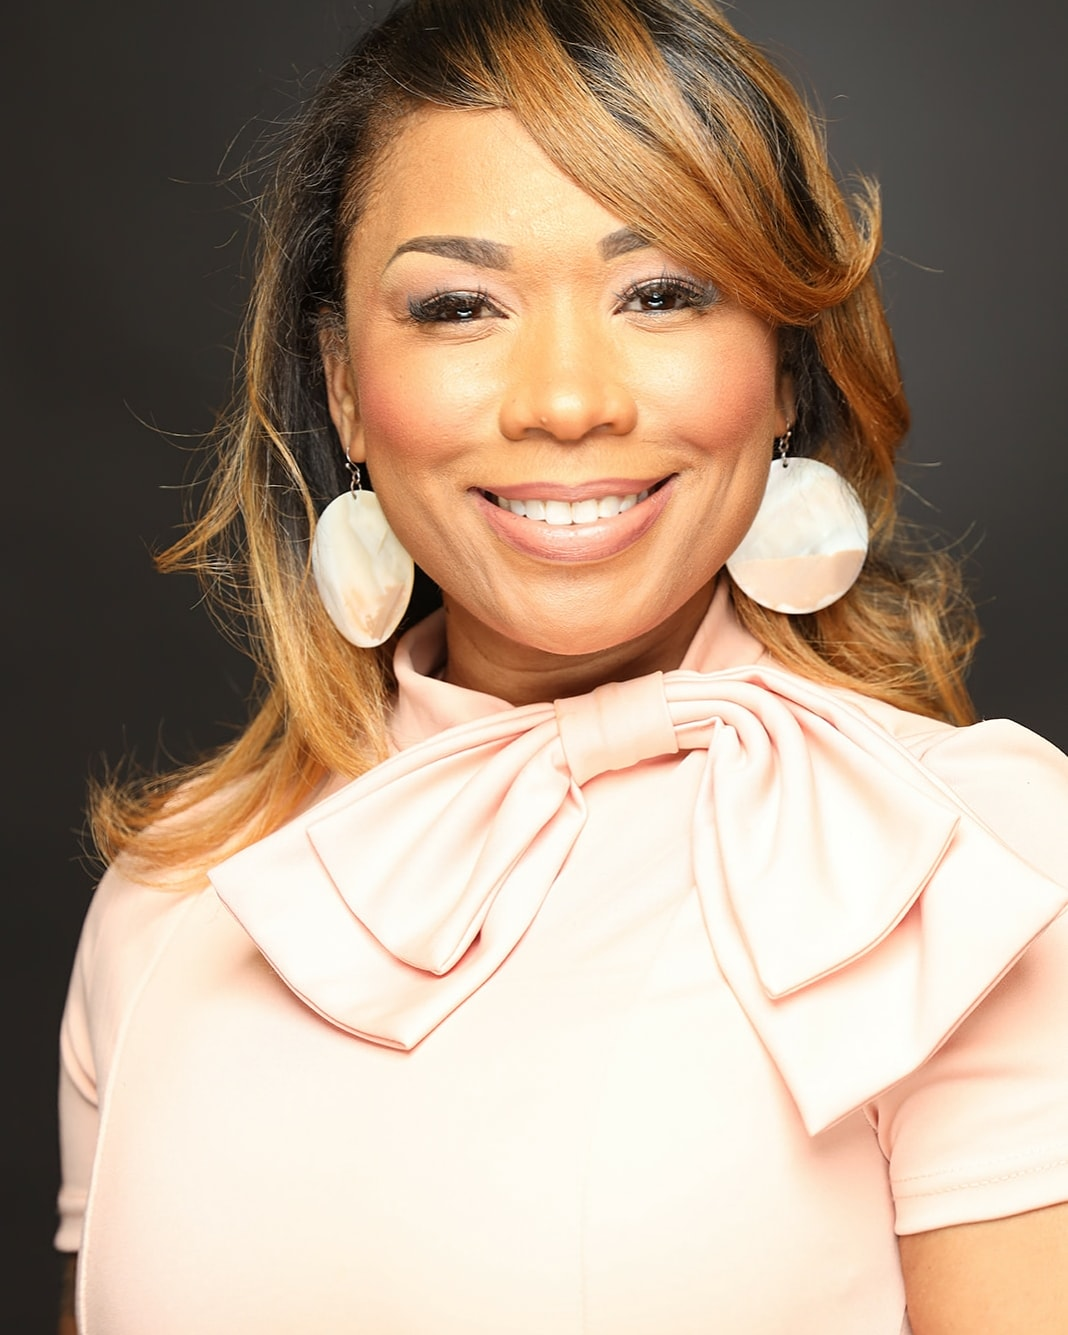 Dr. Tiffany Anderson-Washington, LPC, Licensed Professional Counselor in Jackson, MS